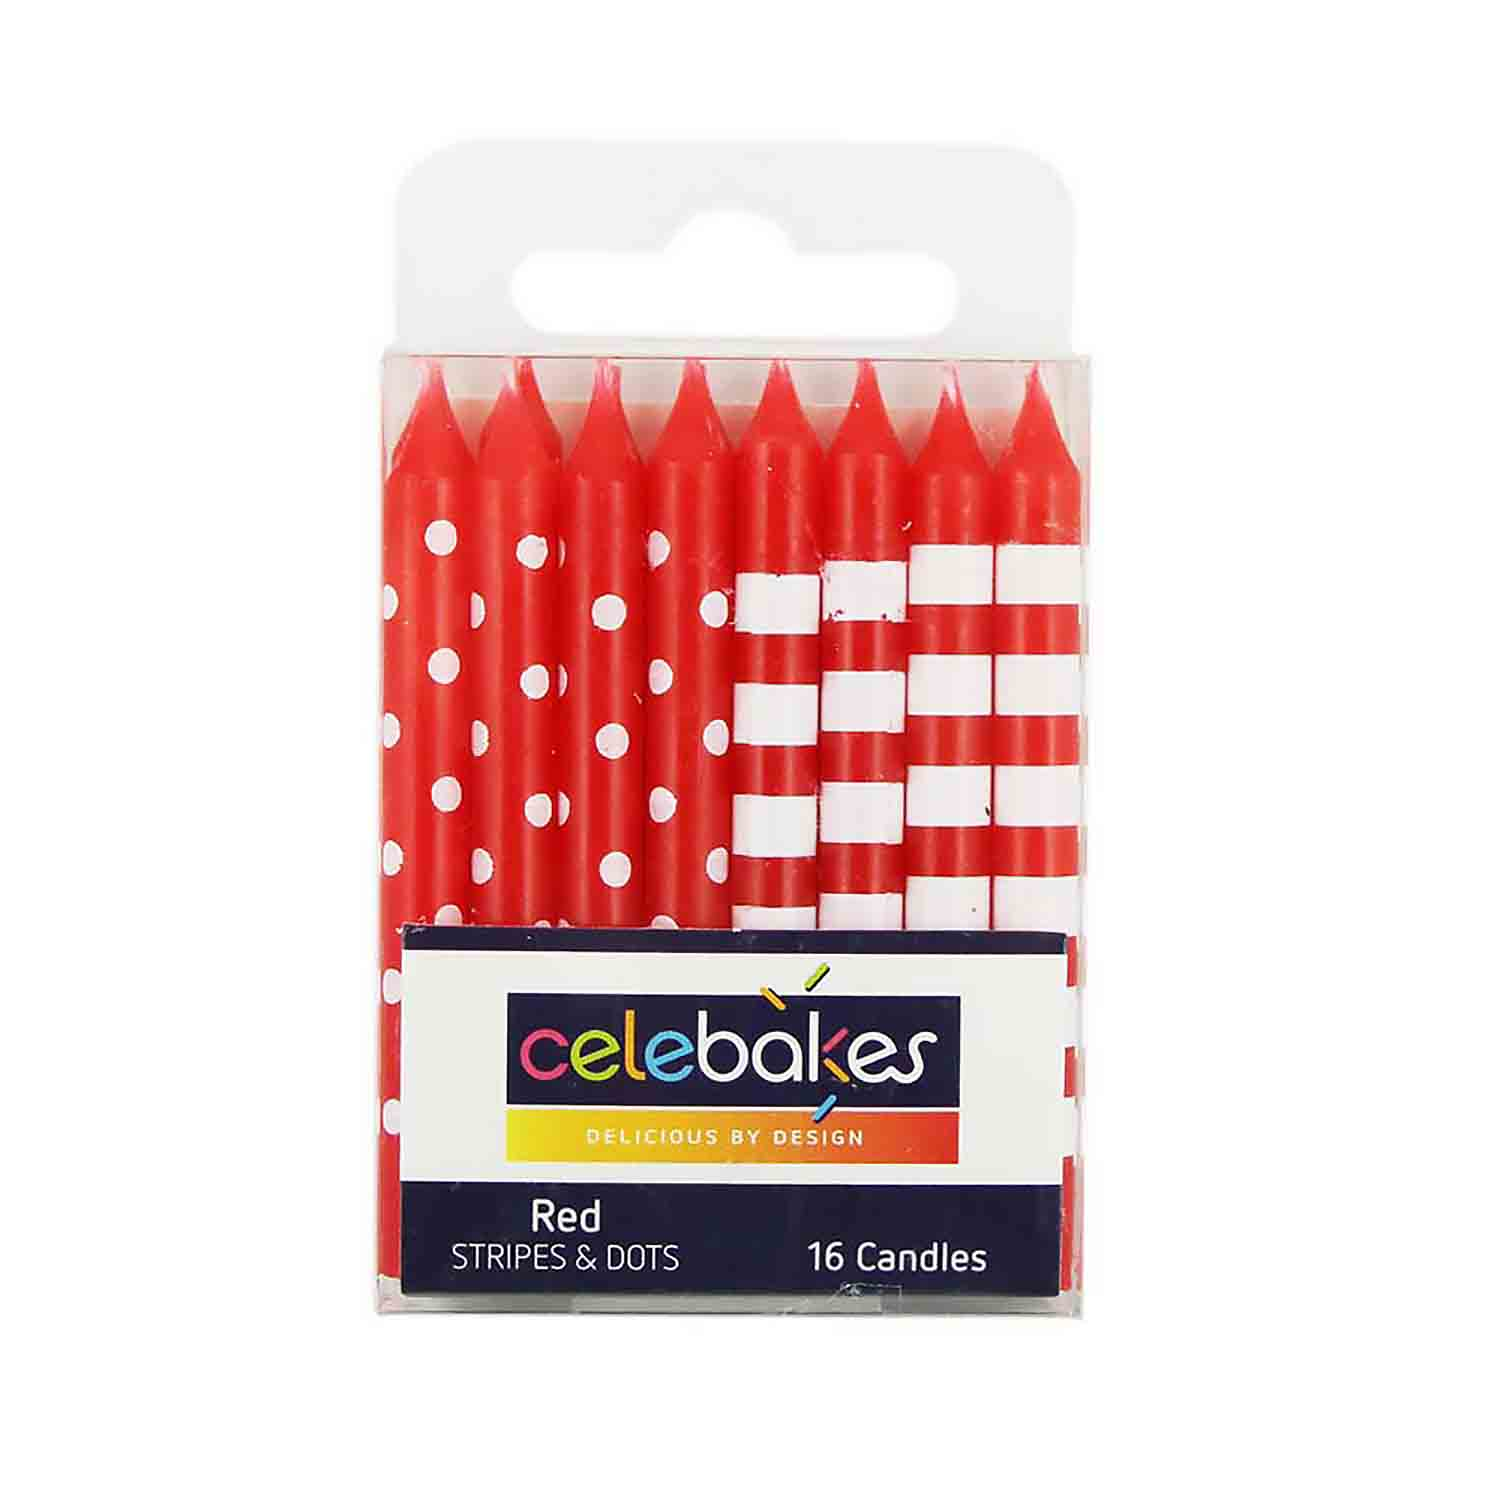 Red Stripes & Dots Candles